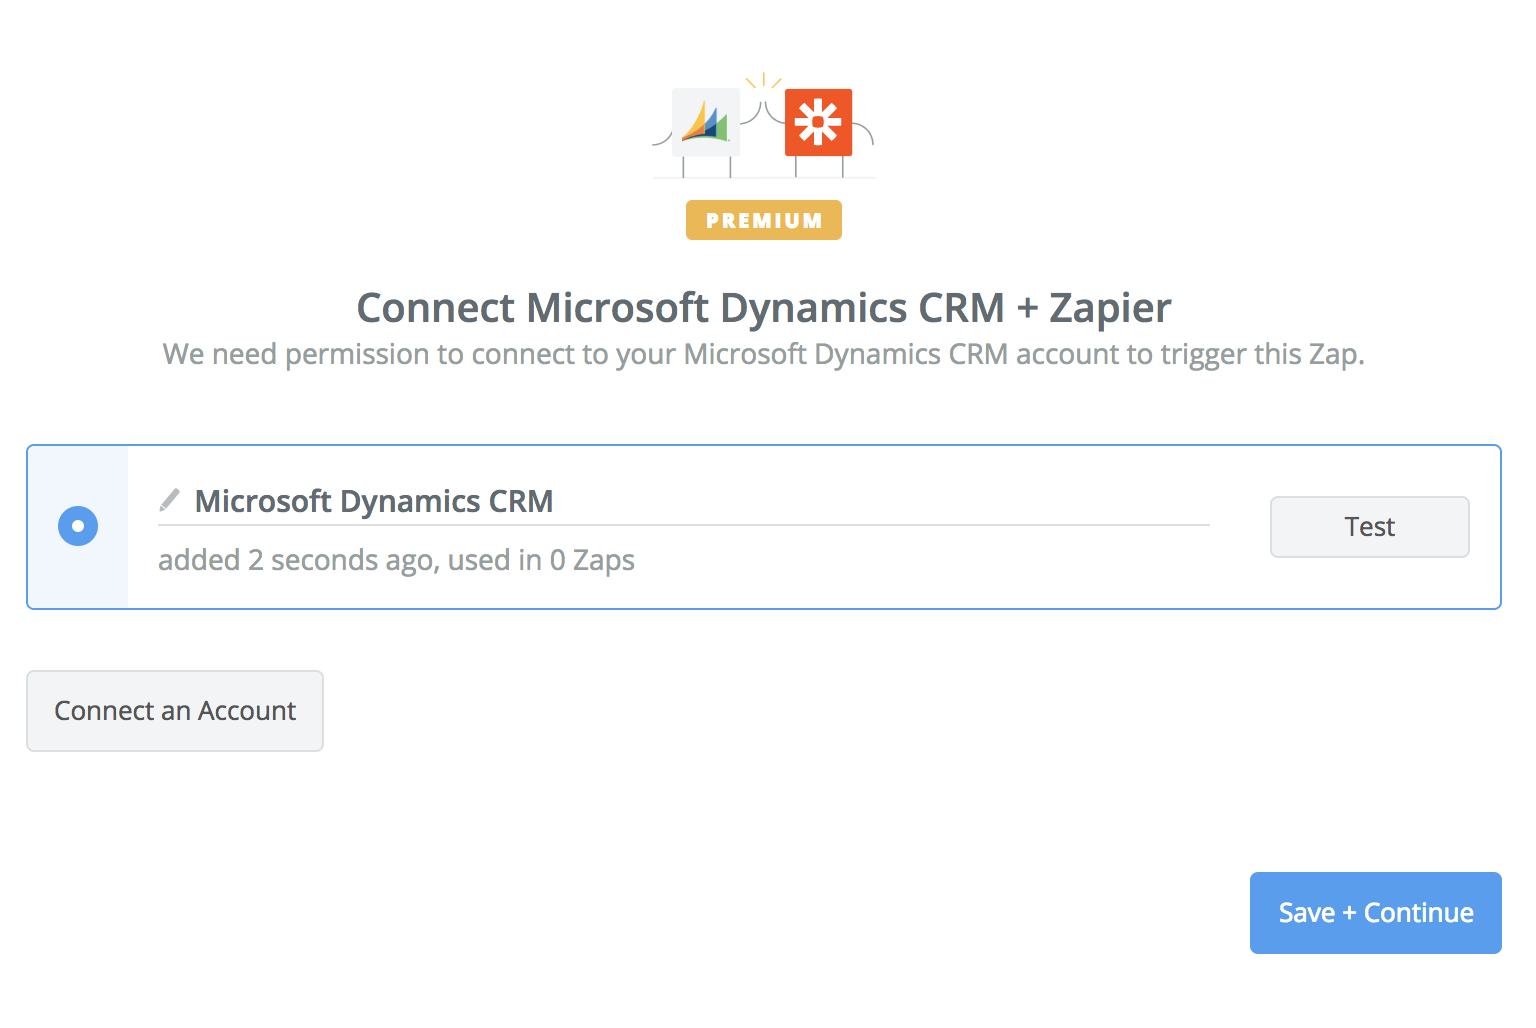 Microsoft Dynamics CRM  connection successful